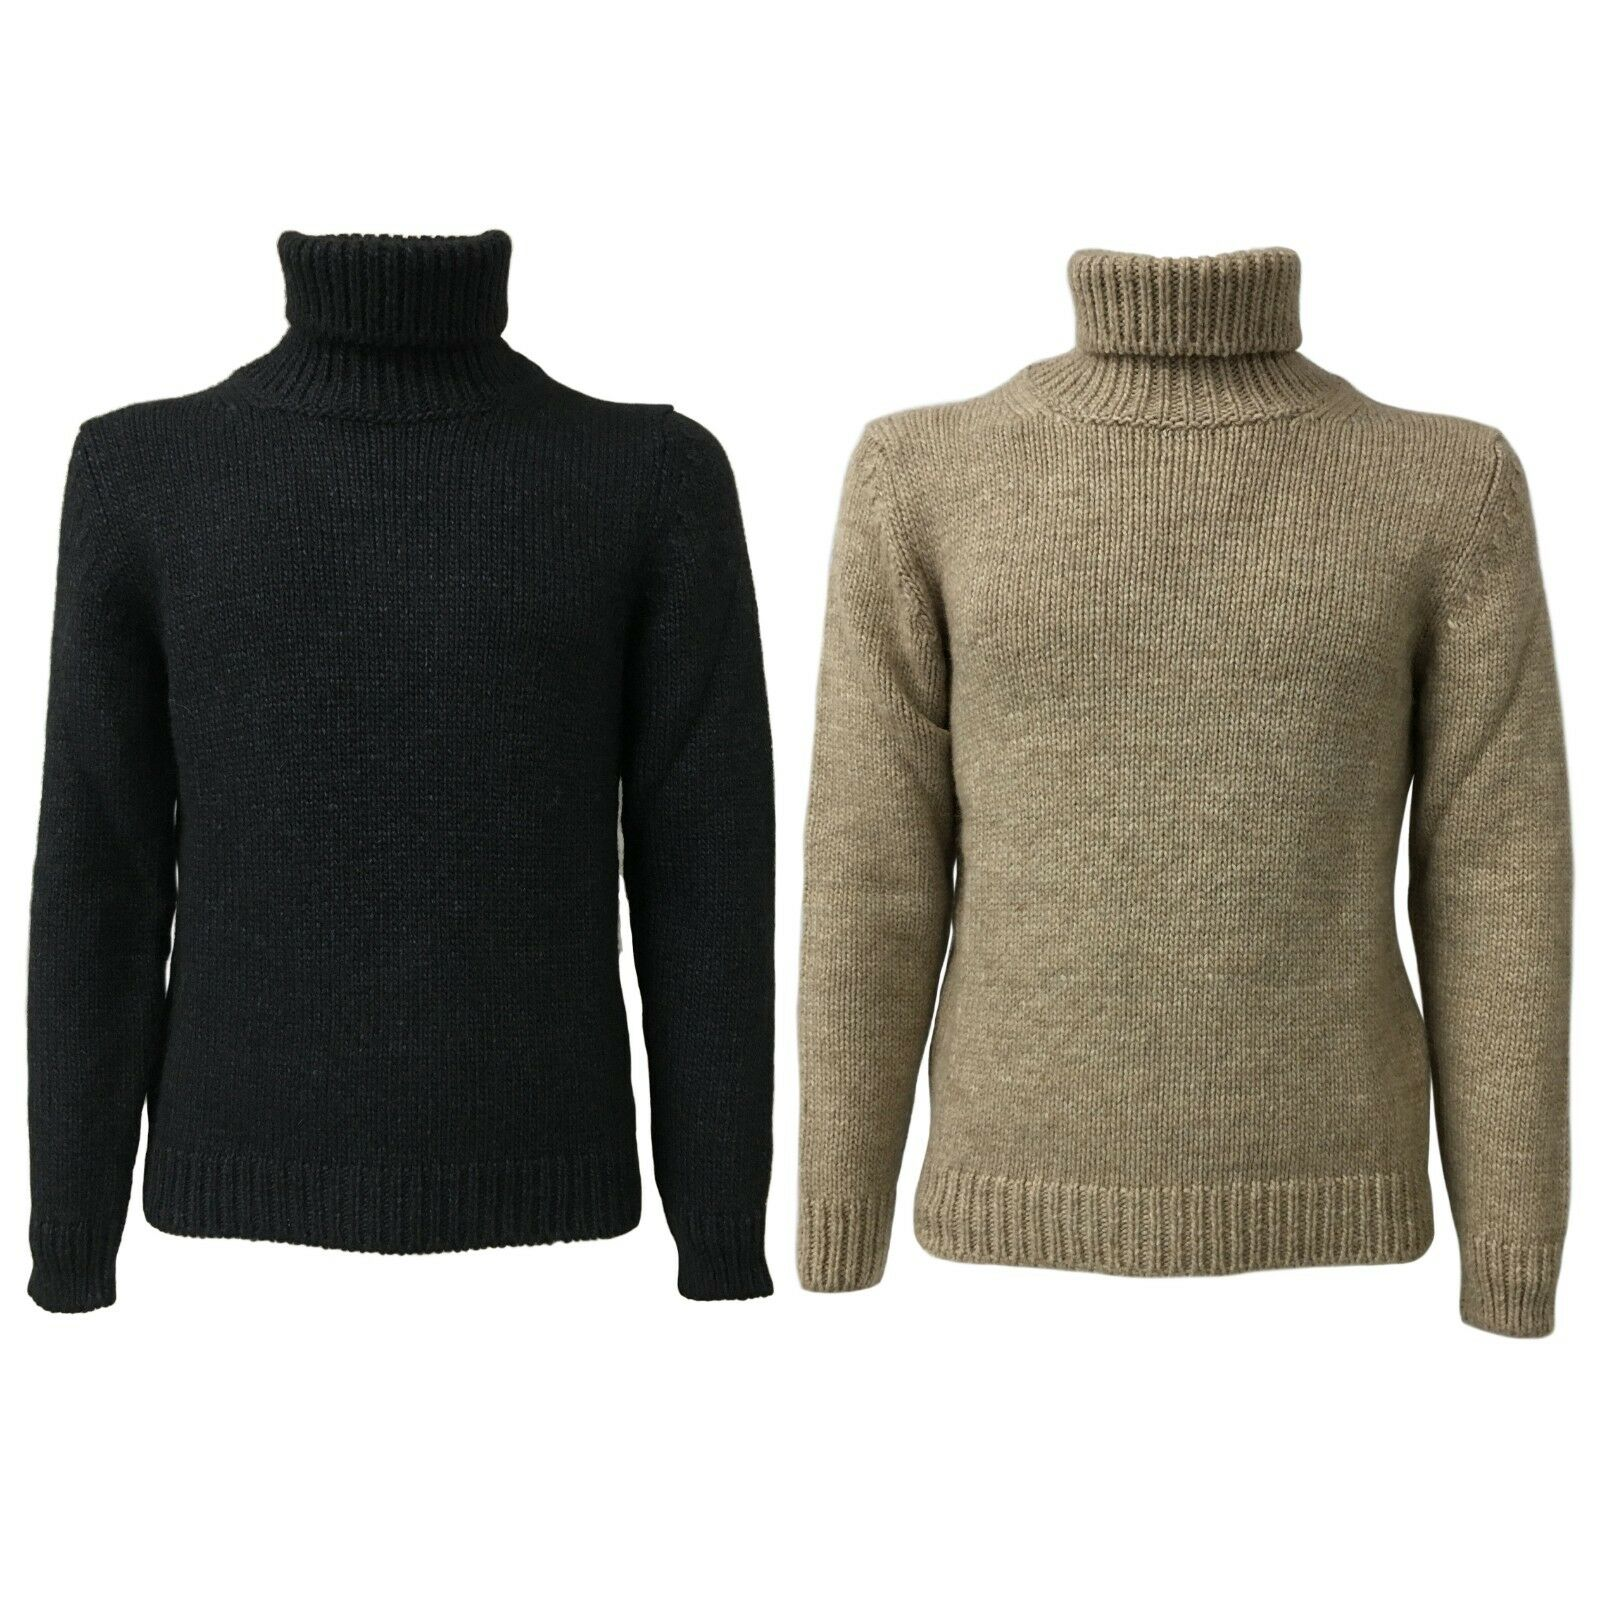 892ebbc3d Details about SETTEFILI CASHMERE men s sweater wool polo neck mod  RA6BUR.BN11 MADE IN ITALY